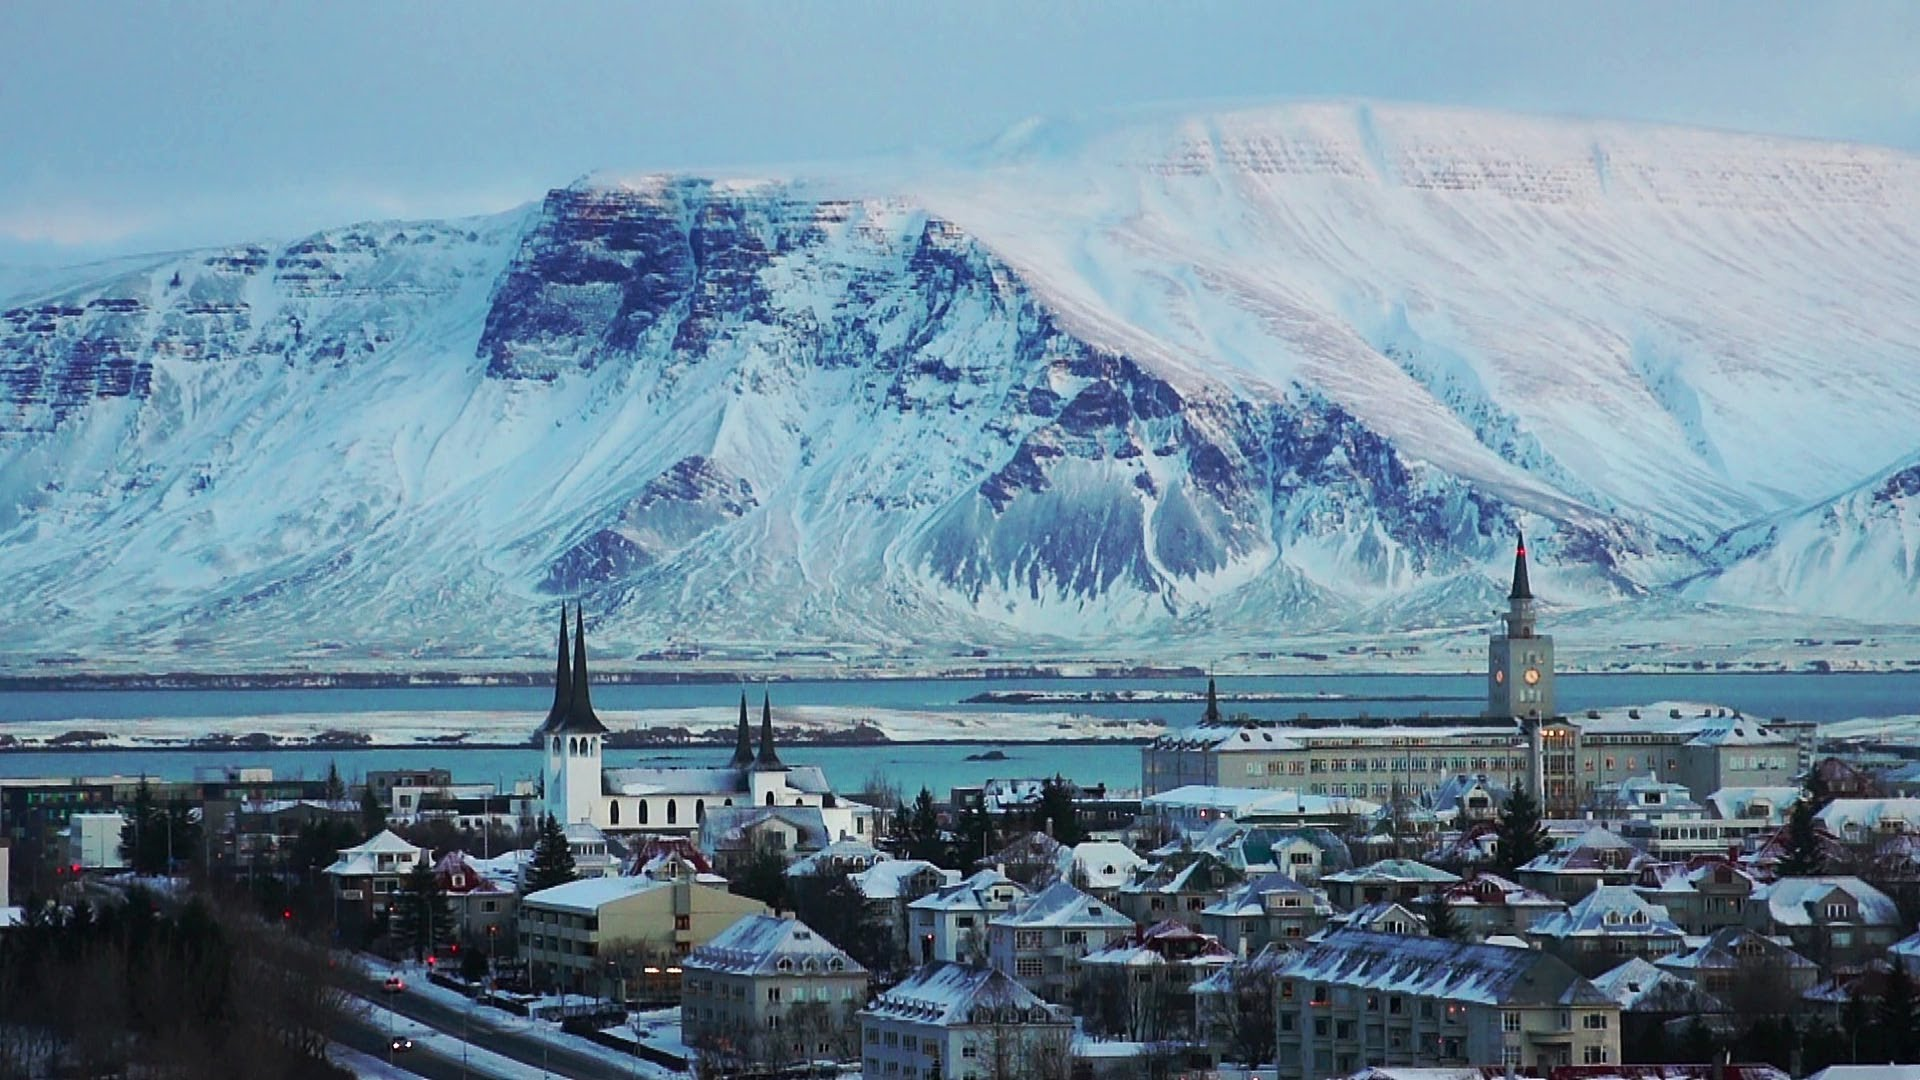 Fly To Iceland From $99.99 One-Way And Get A Fabulous Seven Night Hotel Stay For FREE!